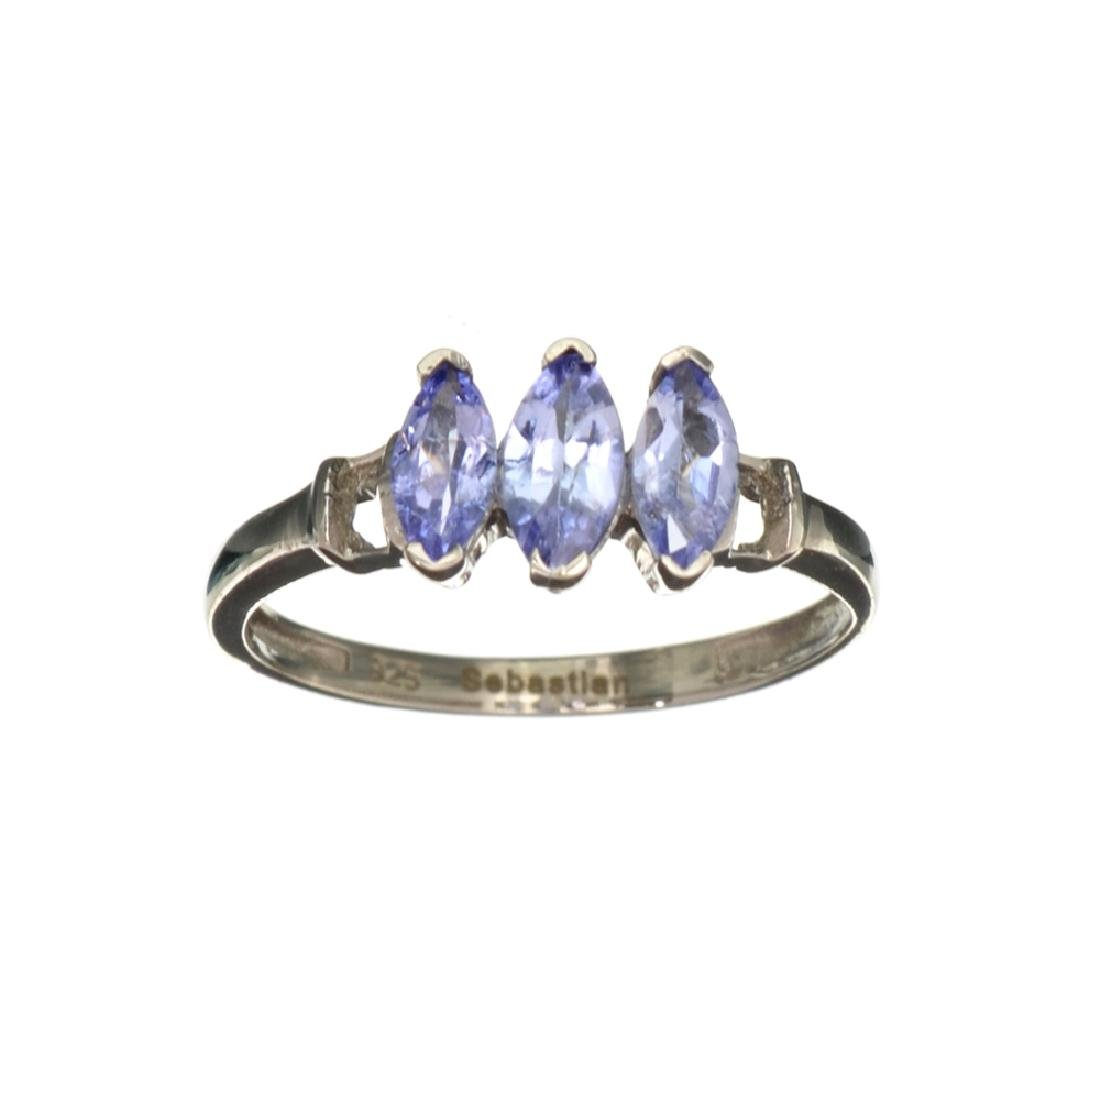 APP: 0.9k Fine Jewelry 0.40CT Marquise Cut Tanzanite